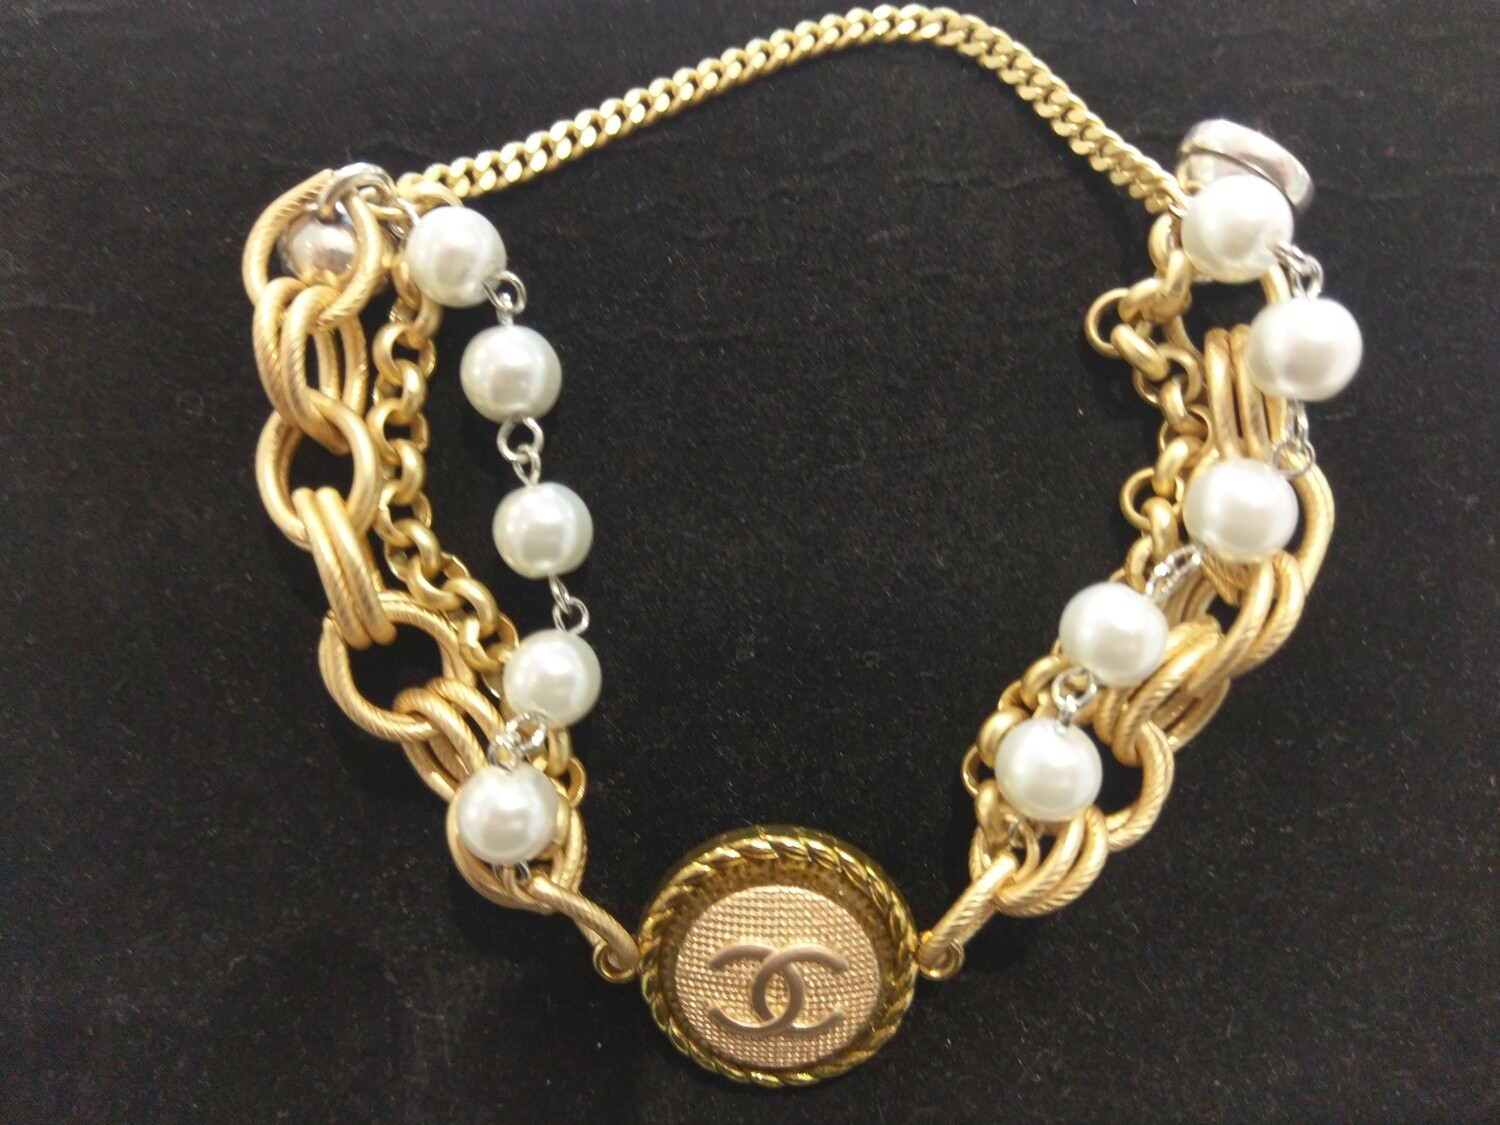 Vintage Chanel  Button Bracelet With Multi-Strands And Gold Button